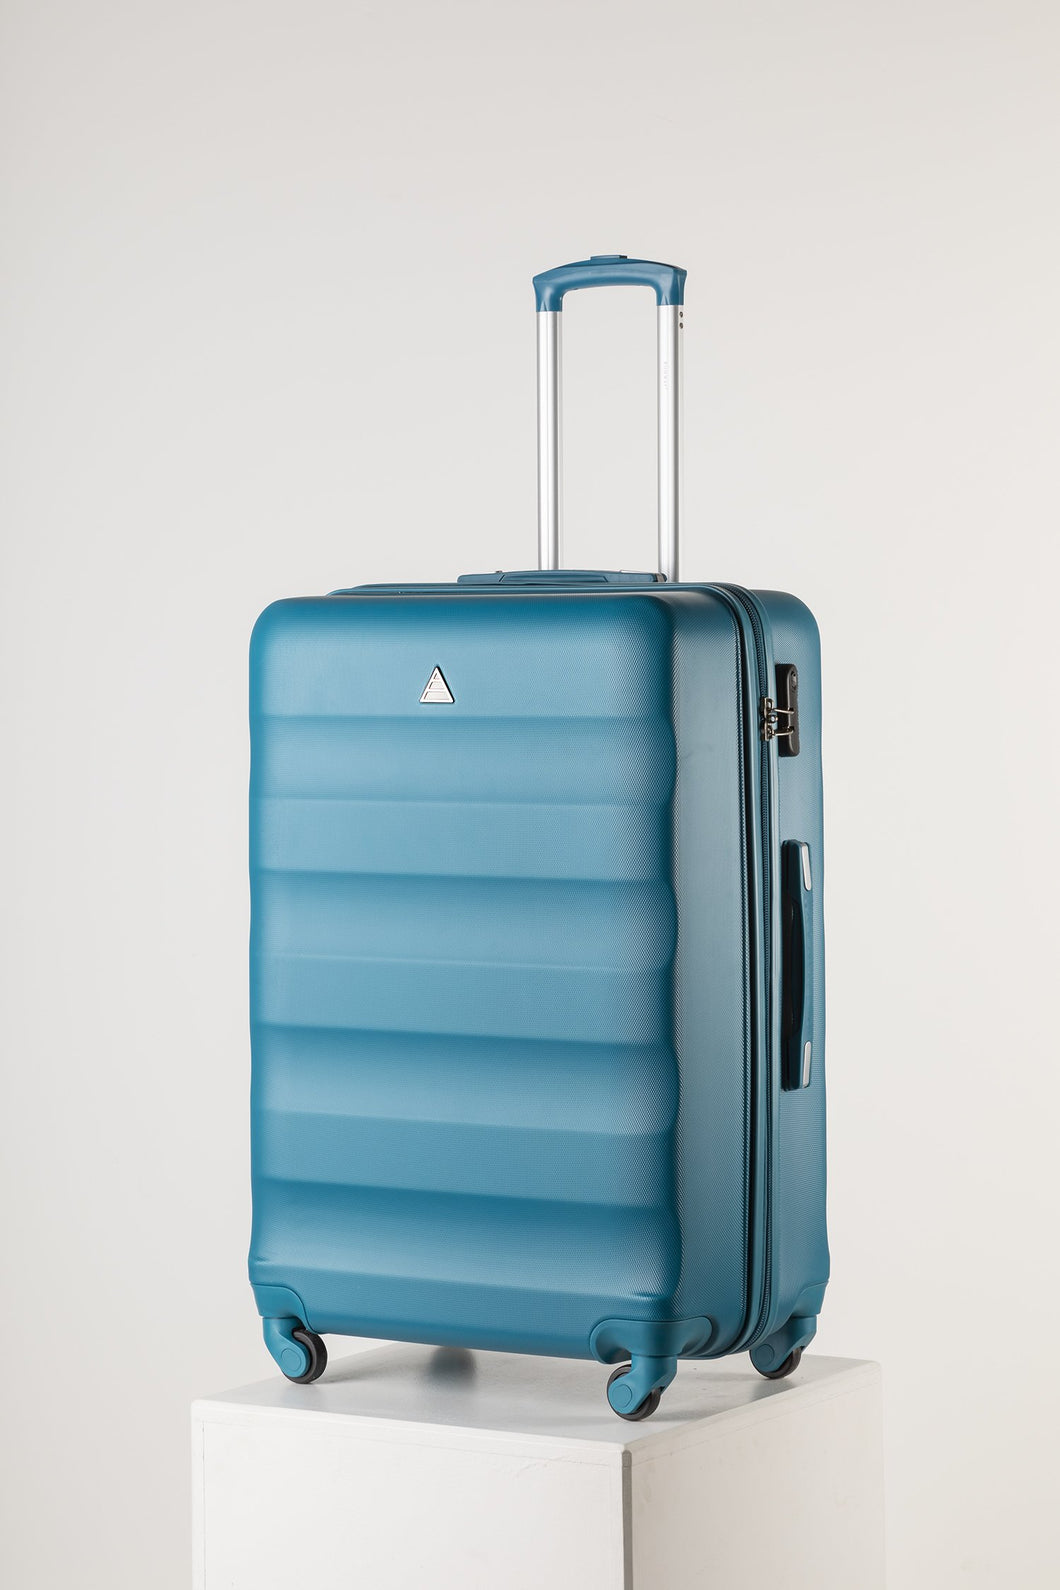 Extra Large Family Sized Luggage Teal